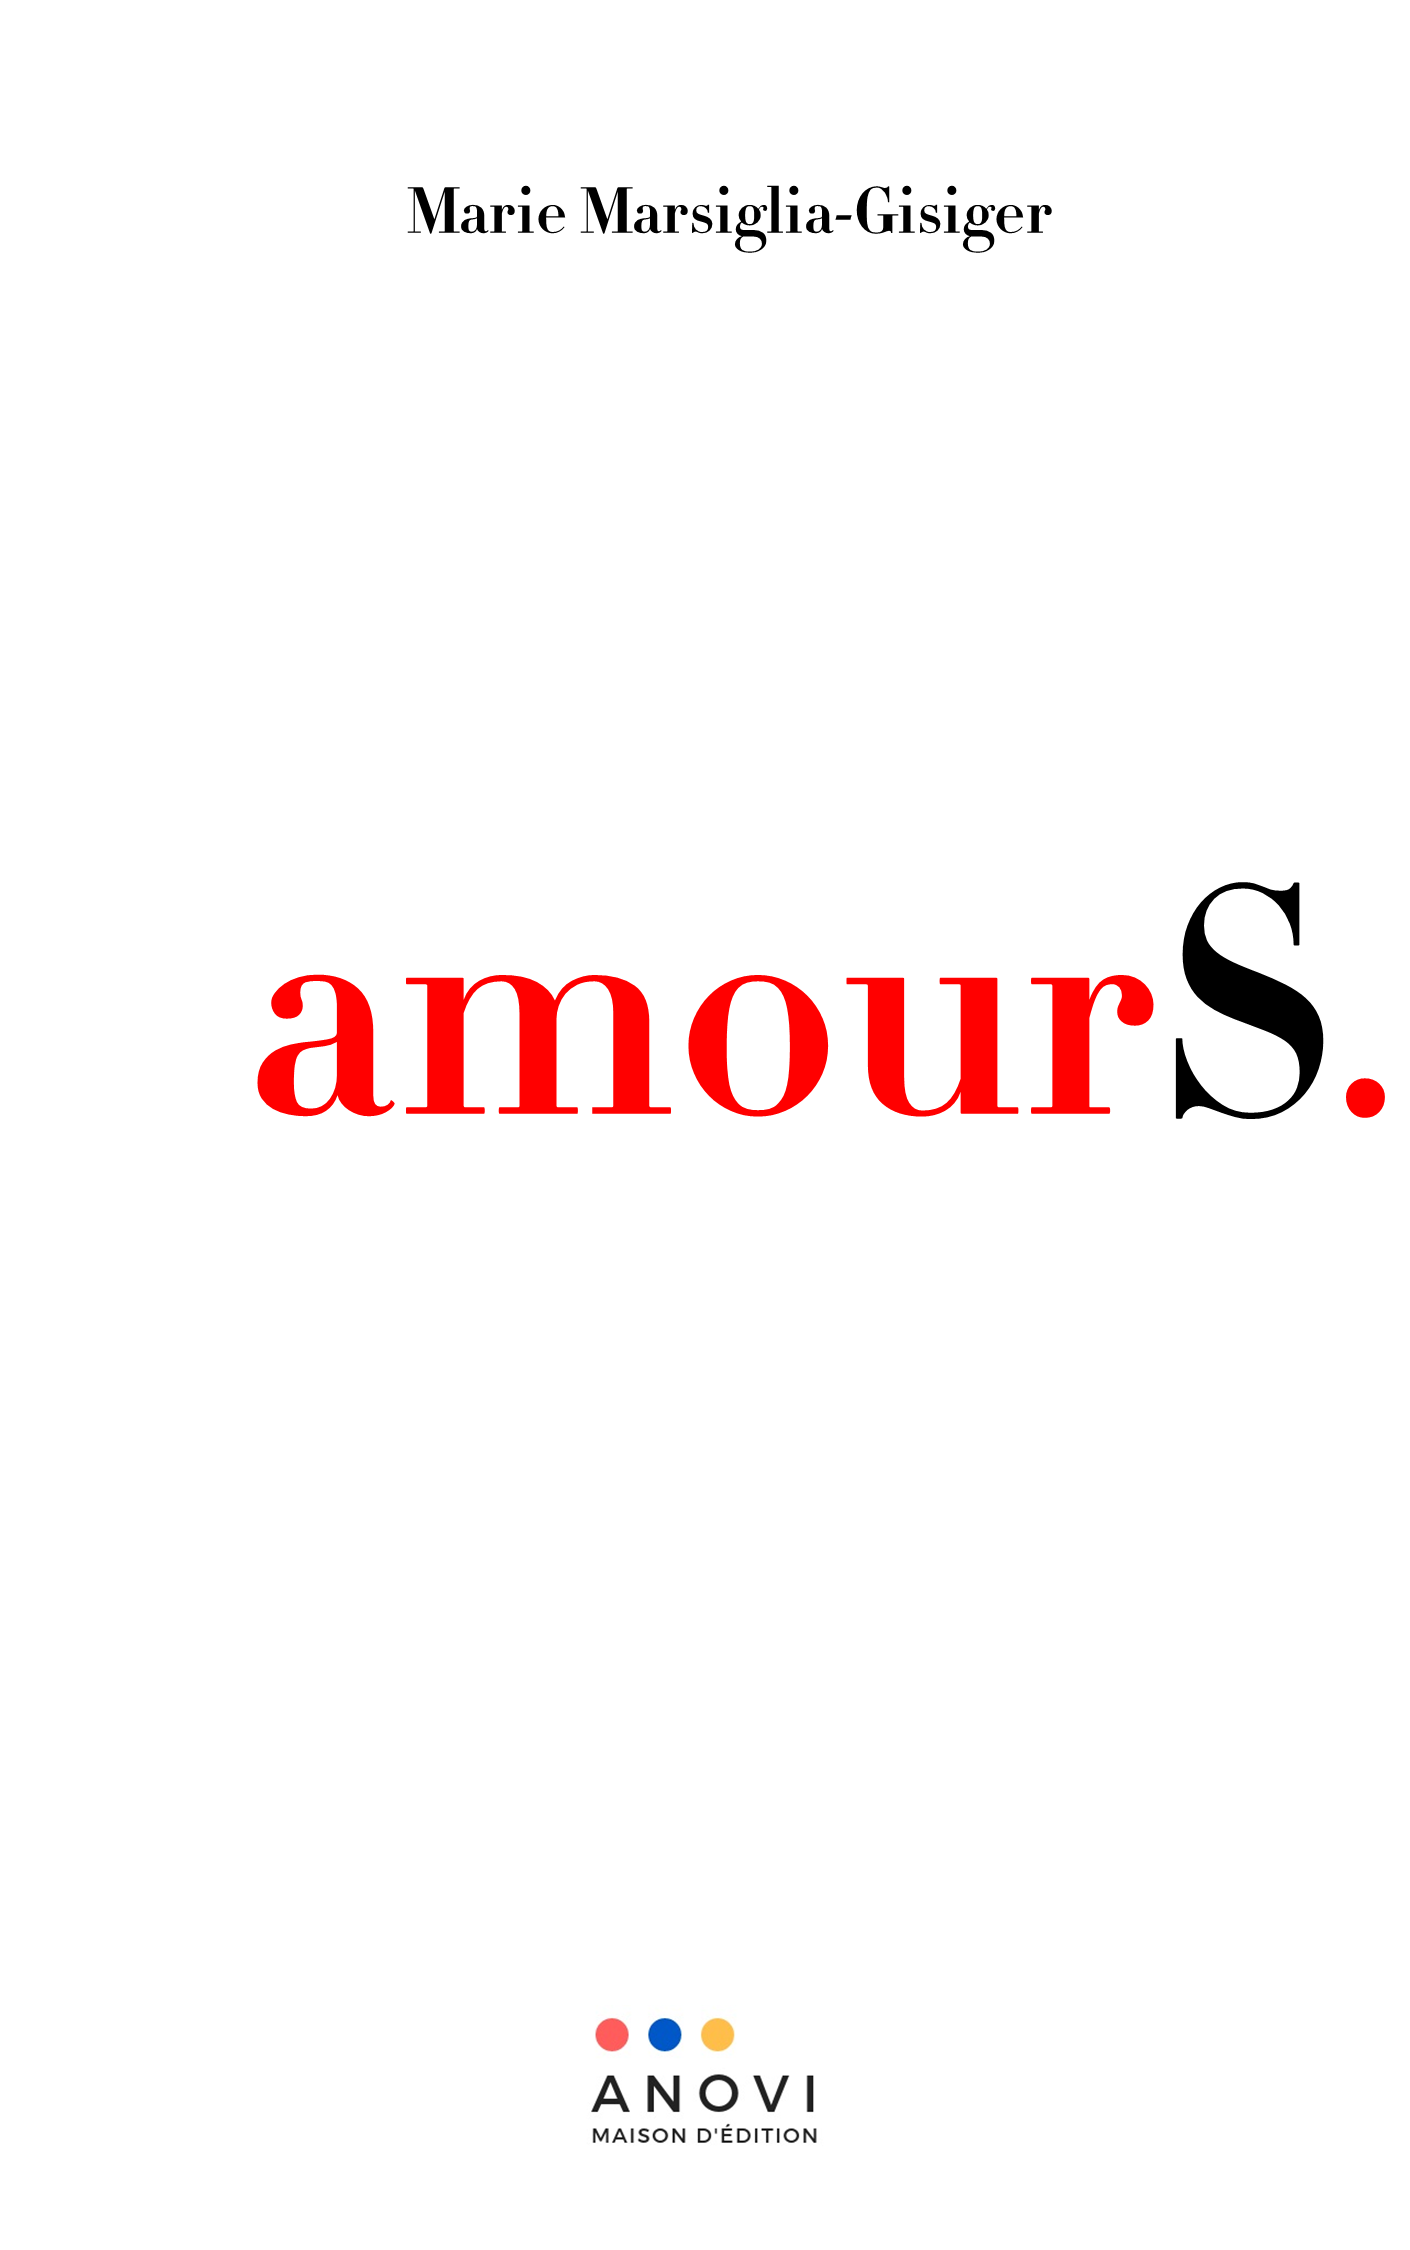 amourS. Image